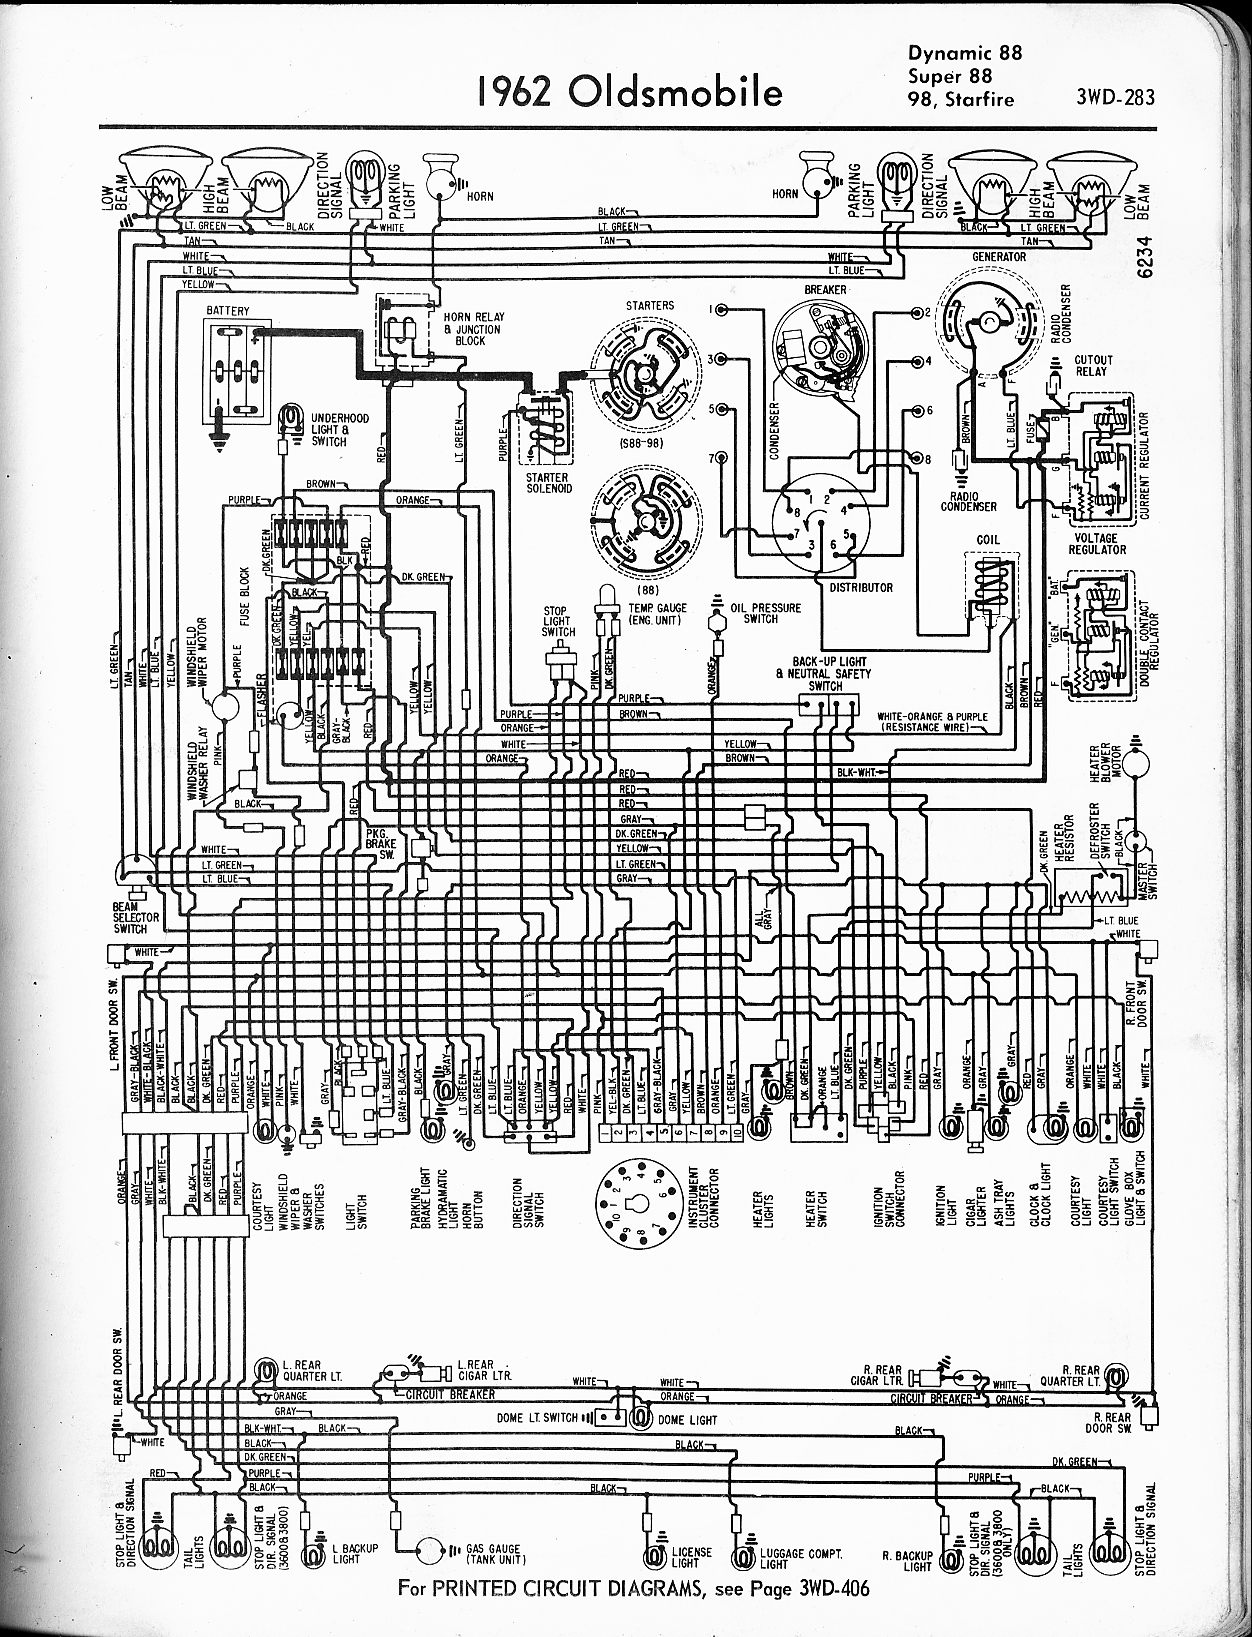 Oldsmobile Wiring Schematics - Diagram Schematic on old car accessories, old car chassis, old car electrical systems, old car spec sheets, old car brakes, old car engine, old auto diagrams, old car charging system, old car ignition, old car parts, old car battery, old car blueprints, old car schematics,